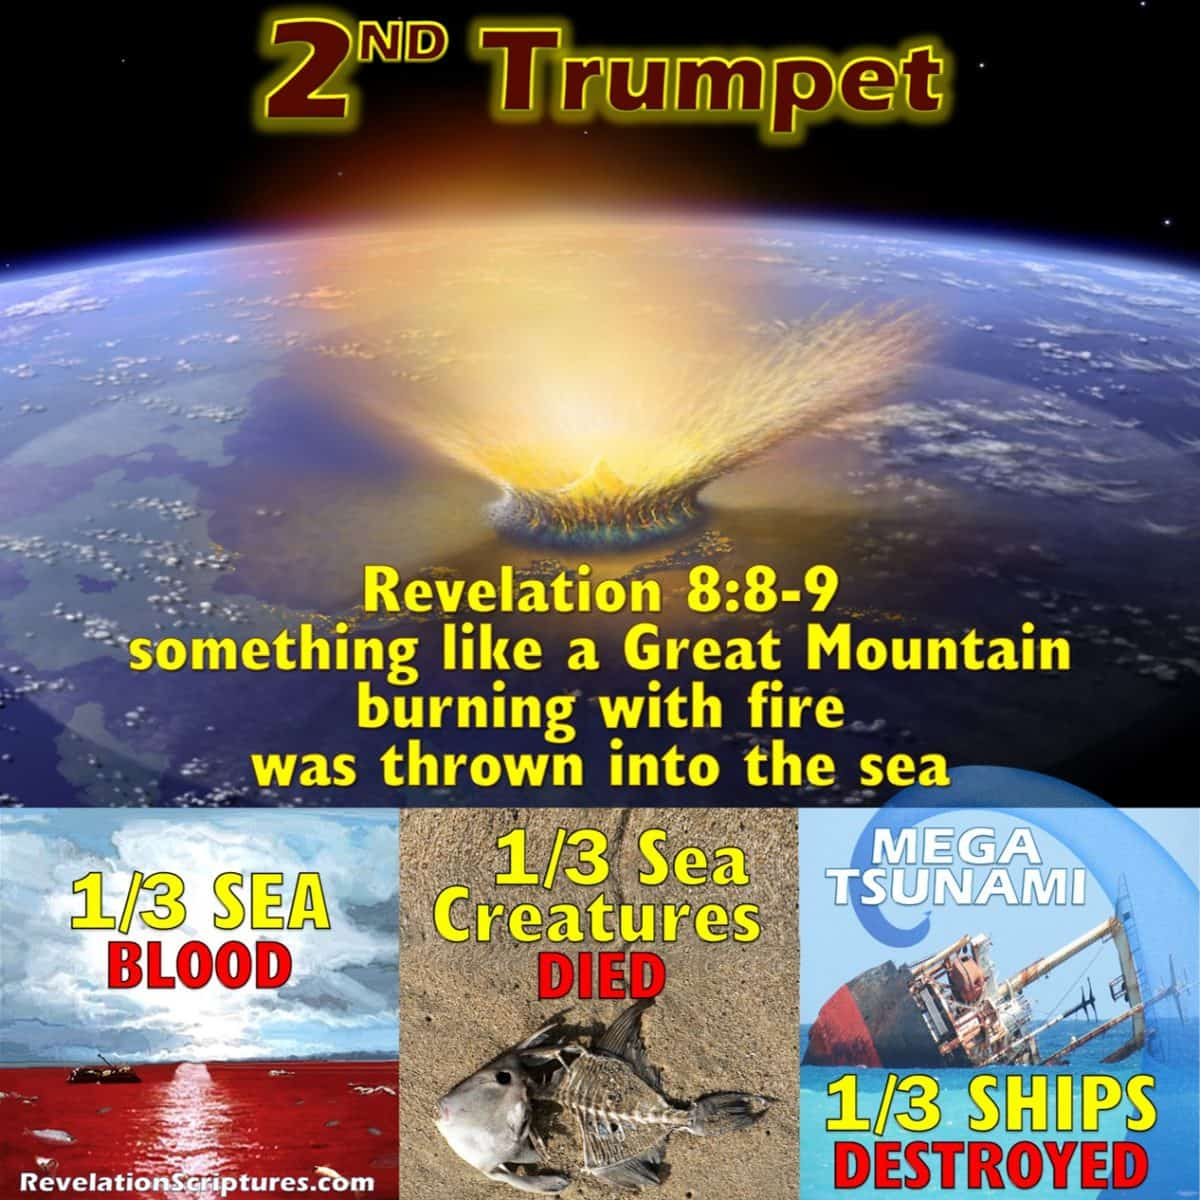 2nd Trumpet,second trumpet,trumpet 2,second trumpet revelation,2nd Trumpet Revelation,trumpet 2 Revelation,Revelation 8:8,Revelation Chapter 8 verse 8,book of Revelation,Apocalypse,biblical interpretation,scriptural interpretation,7 Trumpets,Seven trumpets,7 trumpets Revelation,seven trumpets revelation,Mega Tsumani,tsunami,comet,star,asteroid,meteor,something like a great mountain,great mountain,mountain,burning with fire,thrown into sea,all ablaze,hurled into the sea, something like a huge mountain,huge mountain, cast into the sea,1/3,third,one third,one-third,ships destroyed,ships,ships wrecked,boats,boats destroyed,boats wrecked,1/3rd ,Revelation 8:9,Revelation Chapter 8 verse 9,a third of the ships were destroyed,one-third of all the ships on the sea were destroyed,third part of the ships were destroyed,a third of the sea became blood,sea became blood,sea turned into blood,sea blood,a third,third part,third of the sea creatures died,sea creatures,third of creatures in the sea died,fish kill,dead ocean,ocean dying,